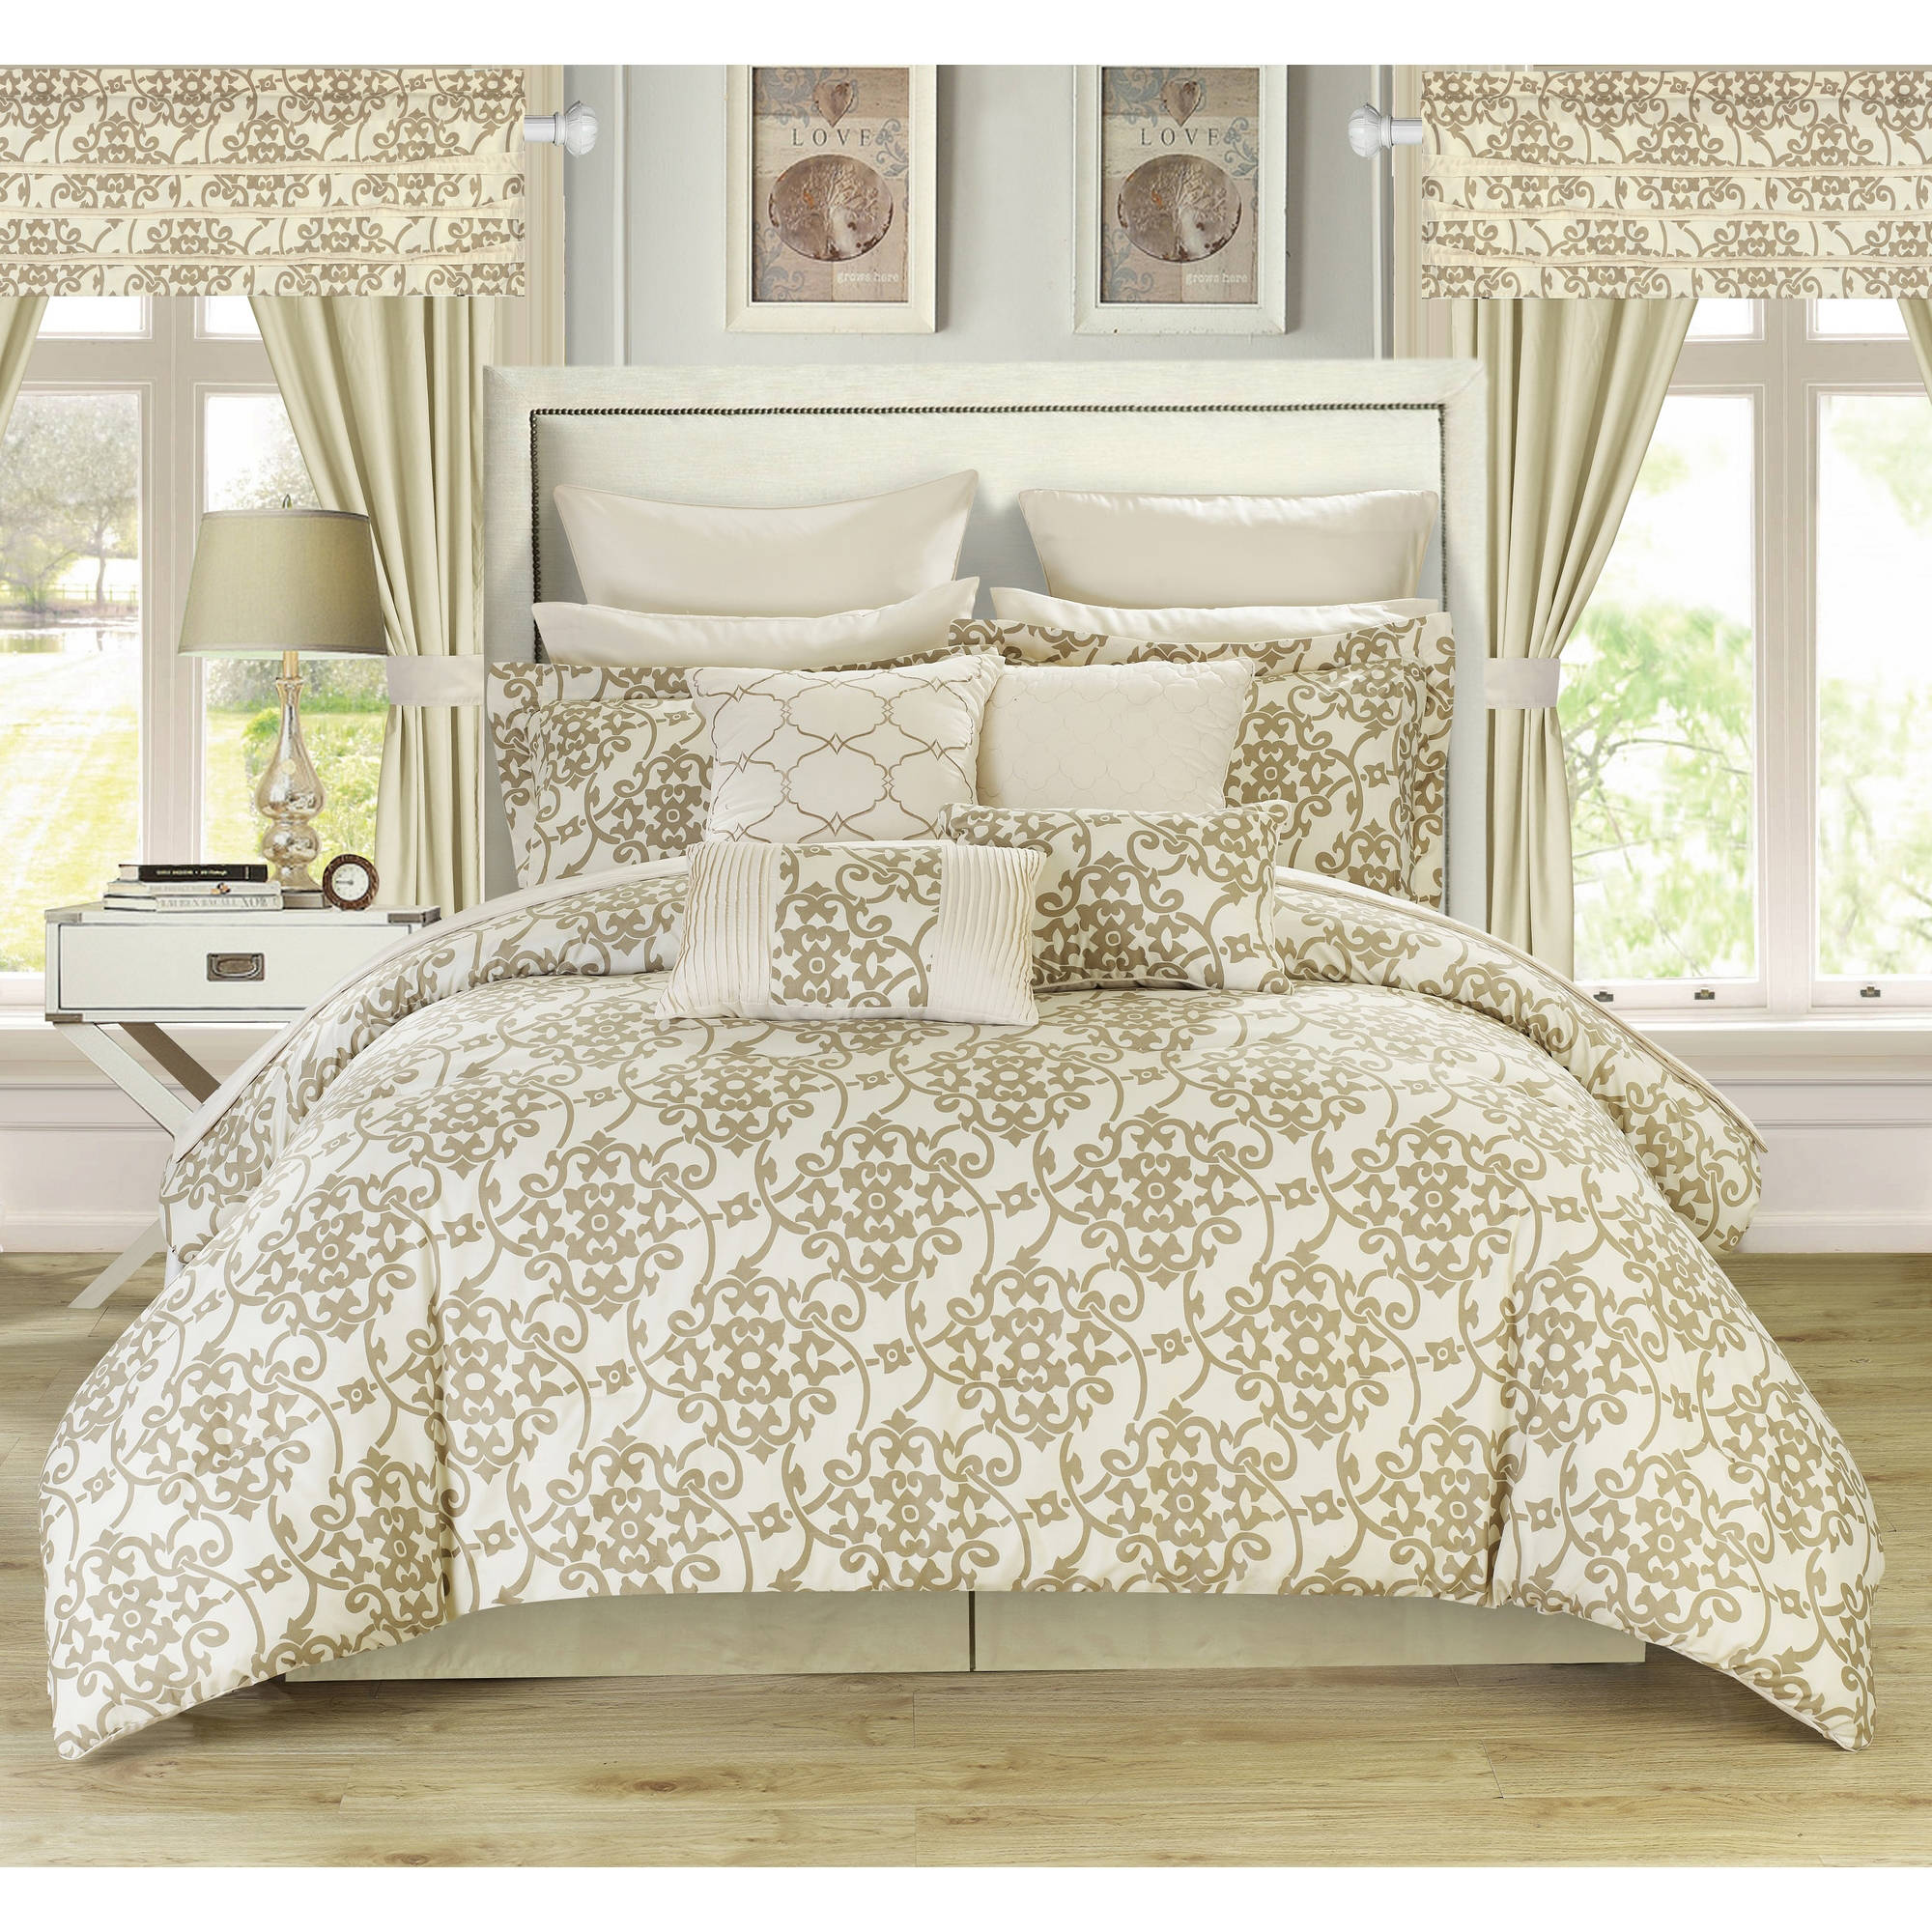 Chic Home Olivier 24-Piece Reversible Bed-in-a-Bag Comforter Set with Window Treatment and Sheets